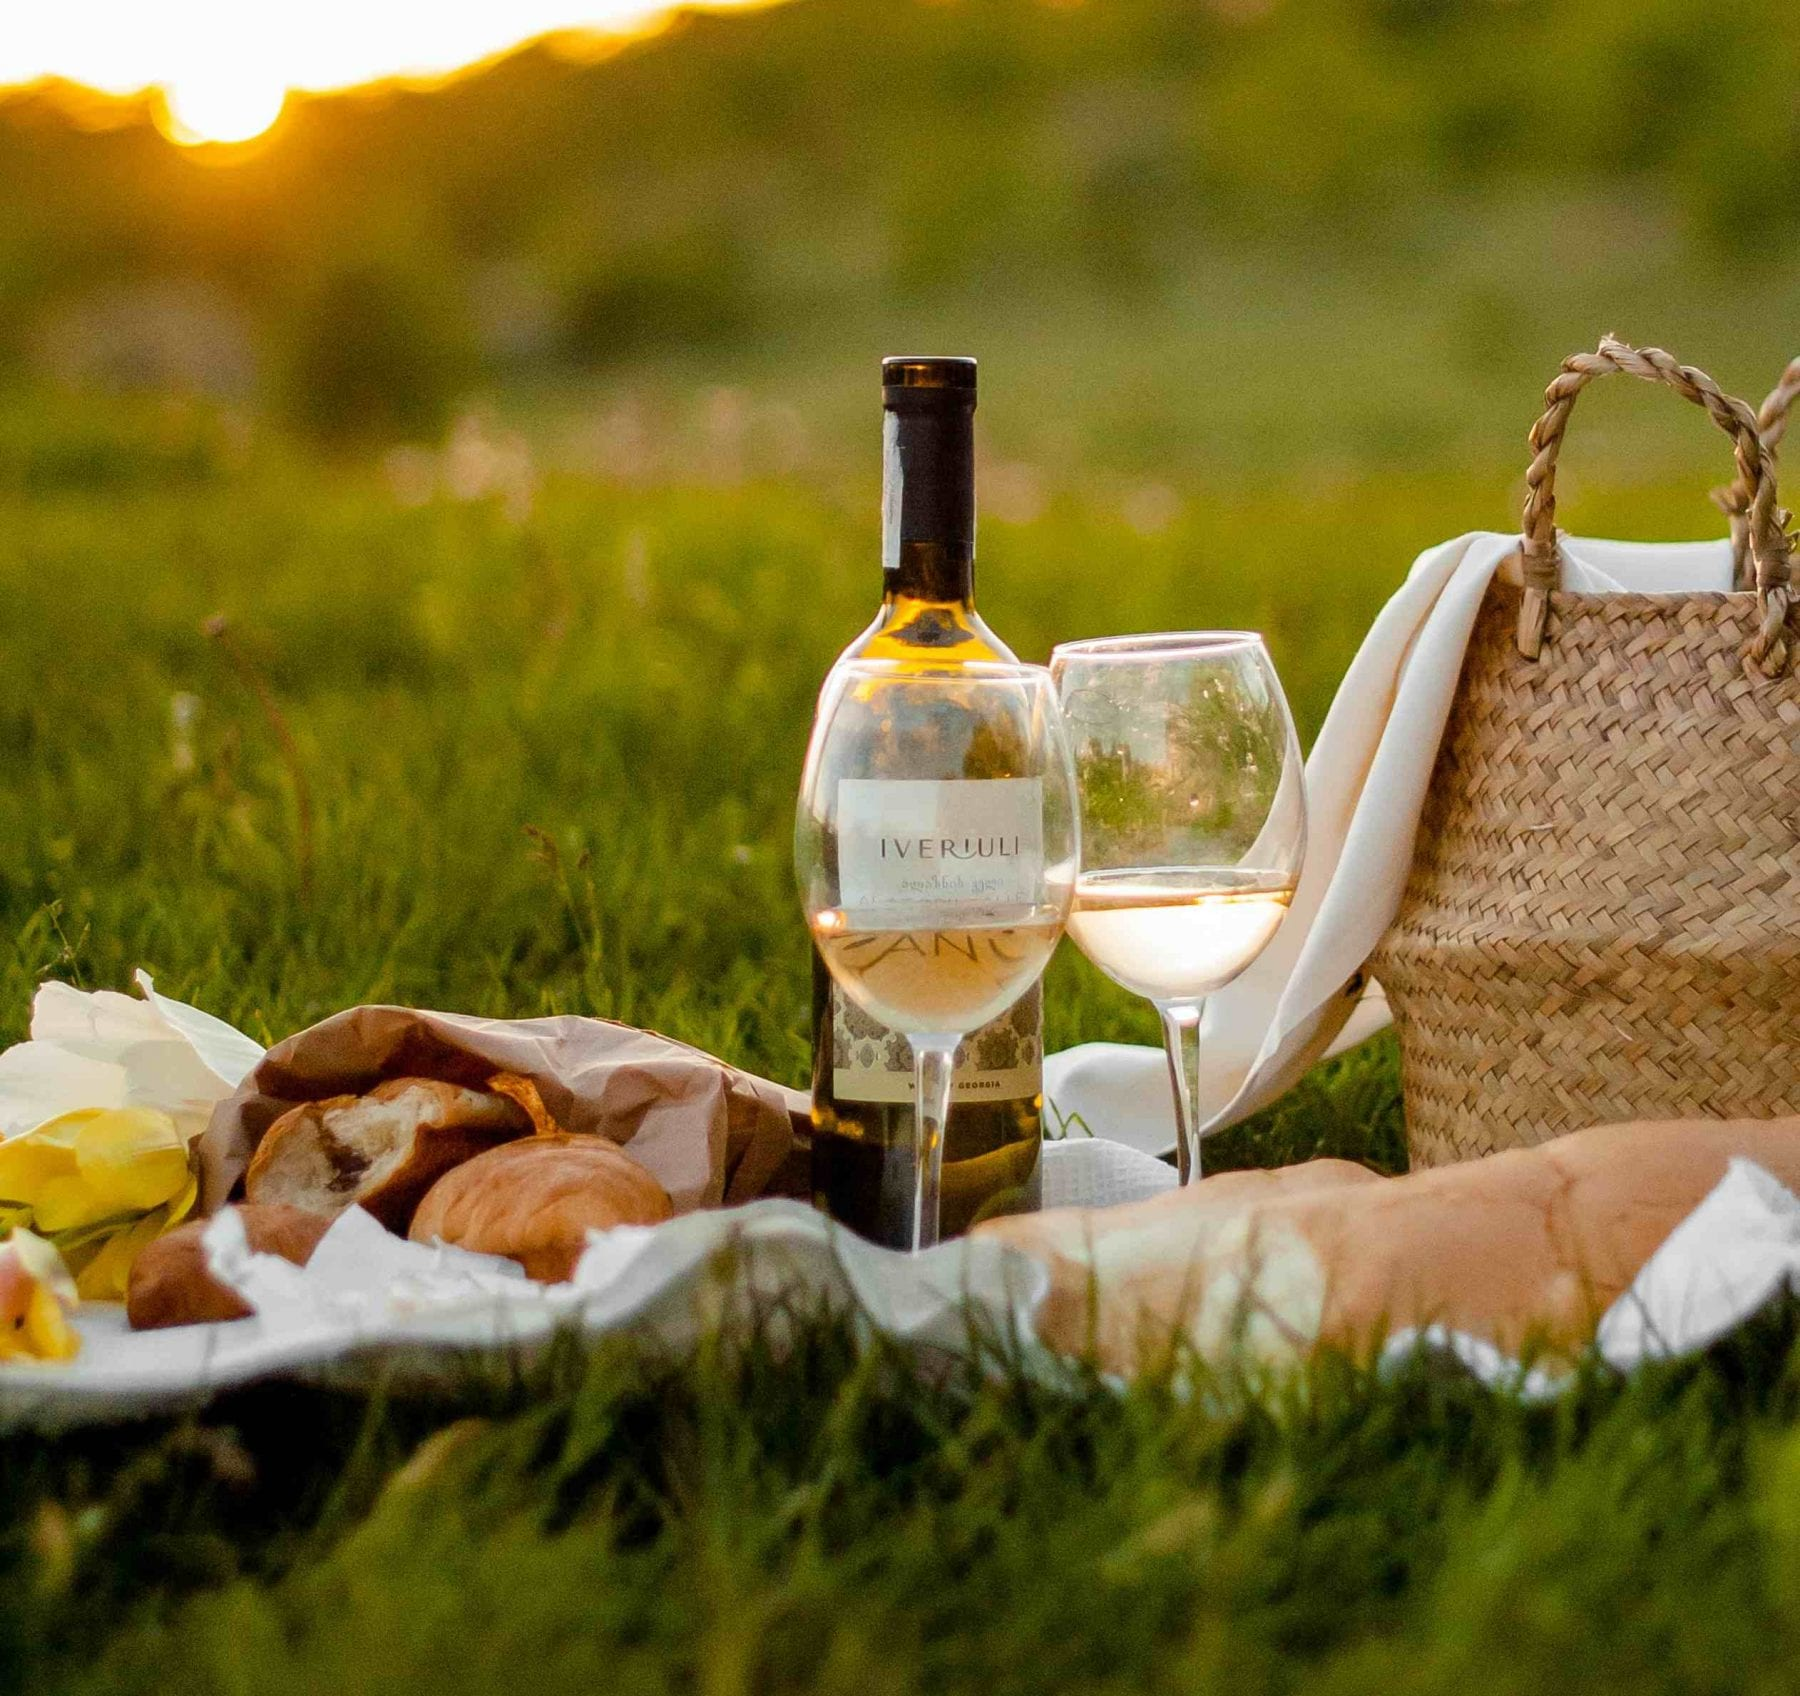 wine and cheeses on a picnic setting in the grass